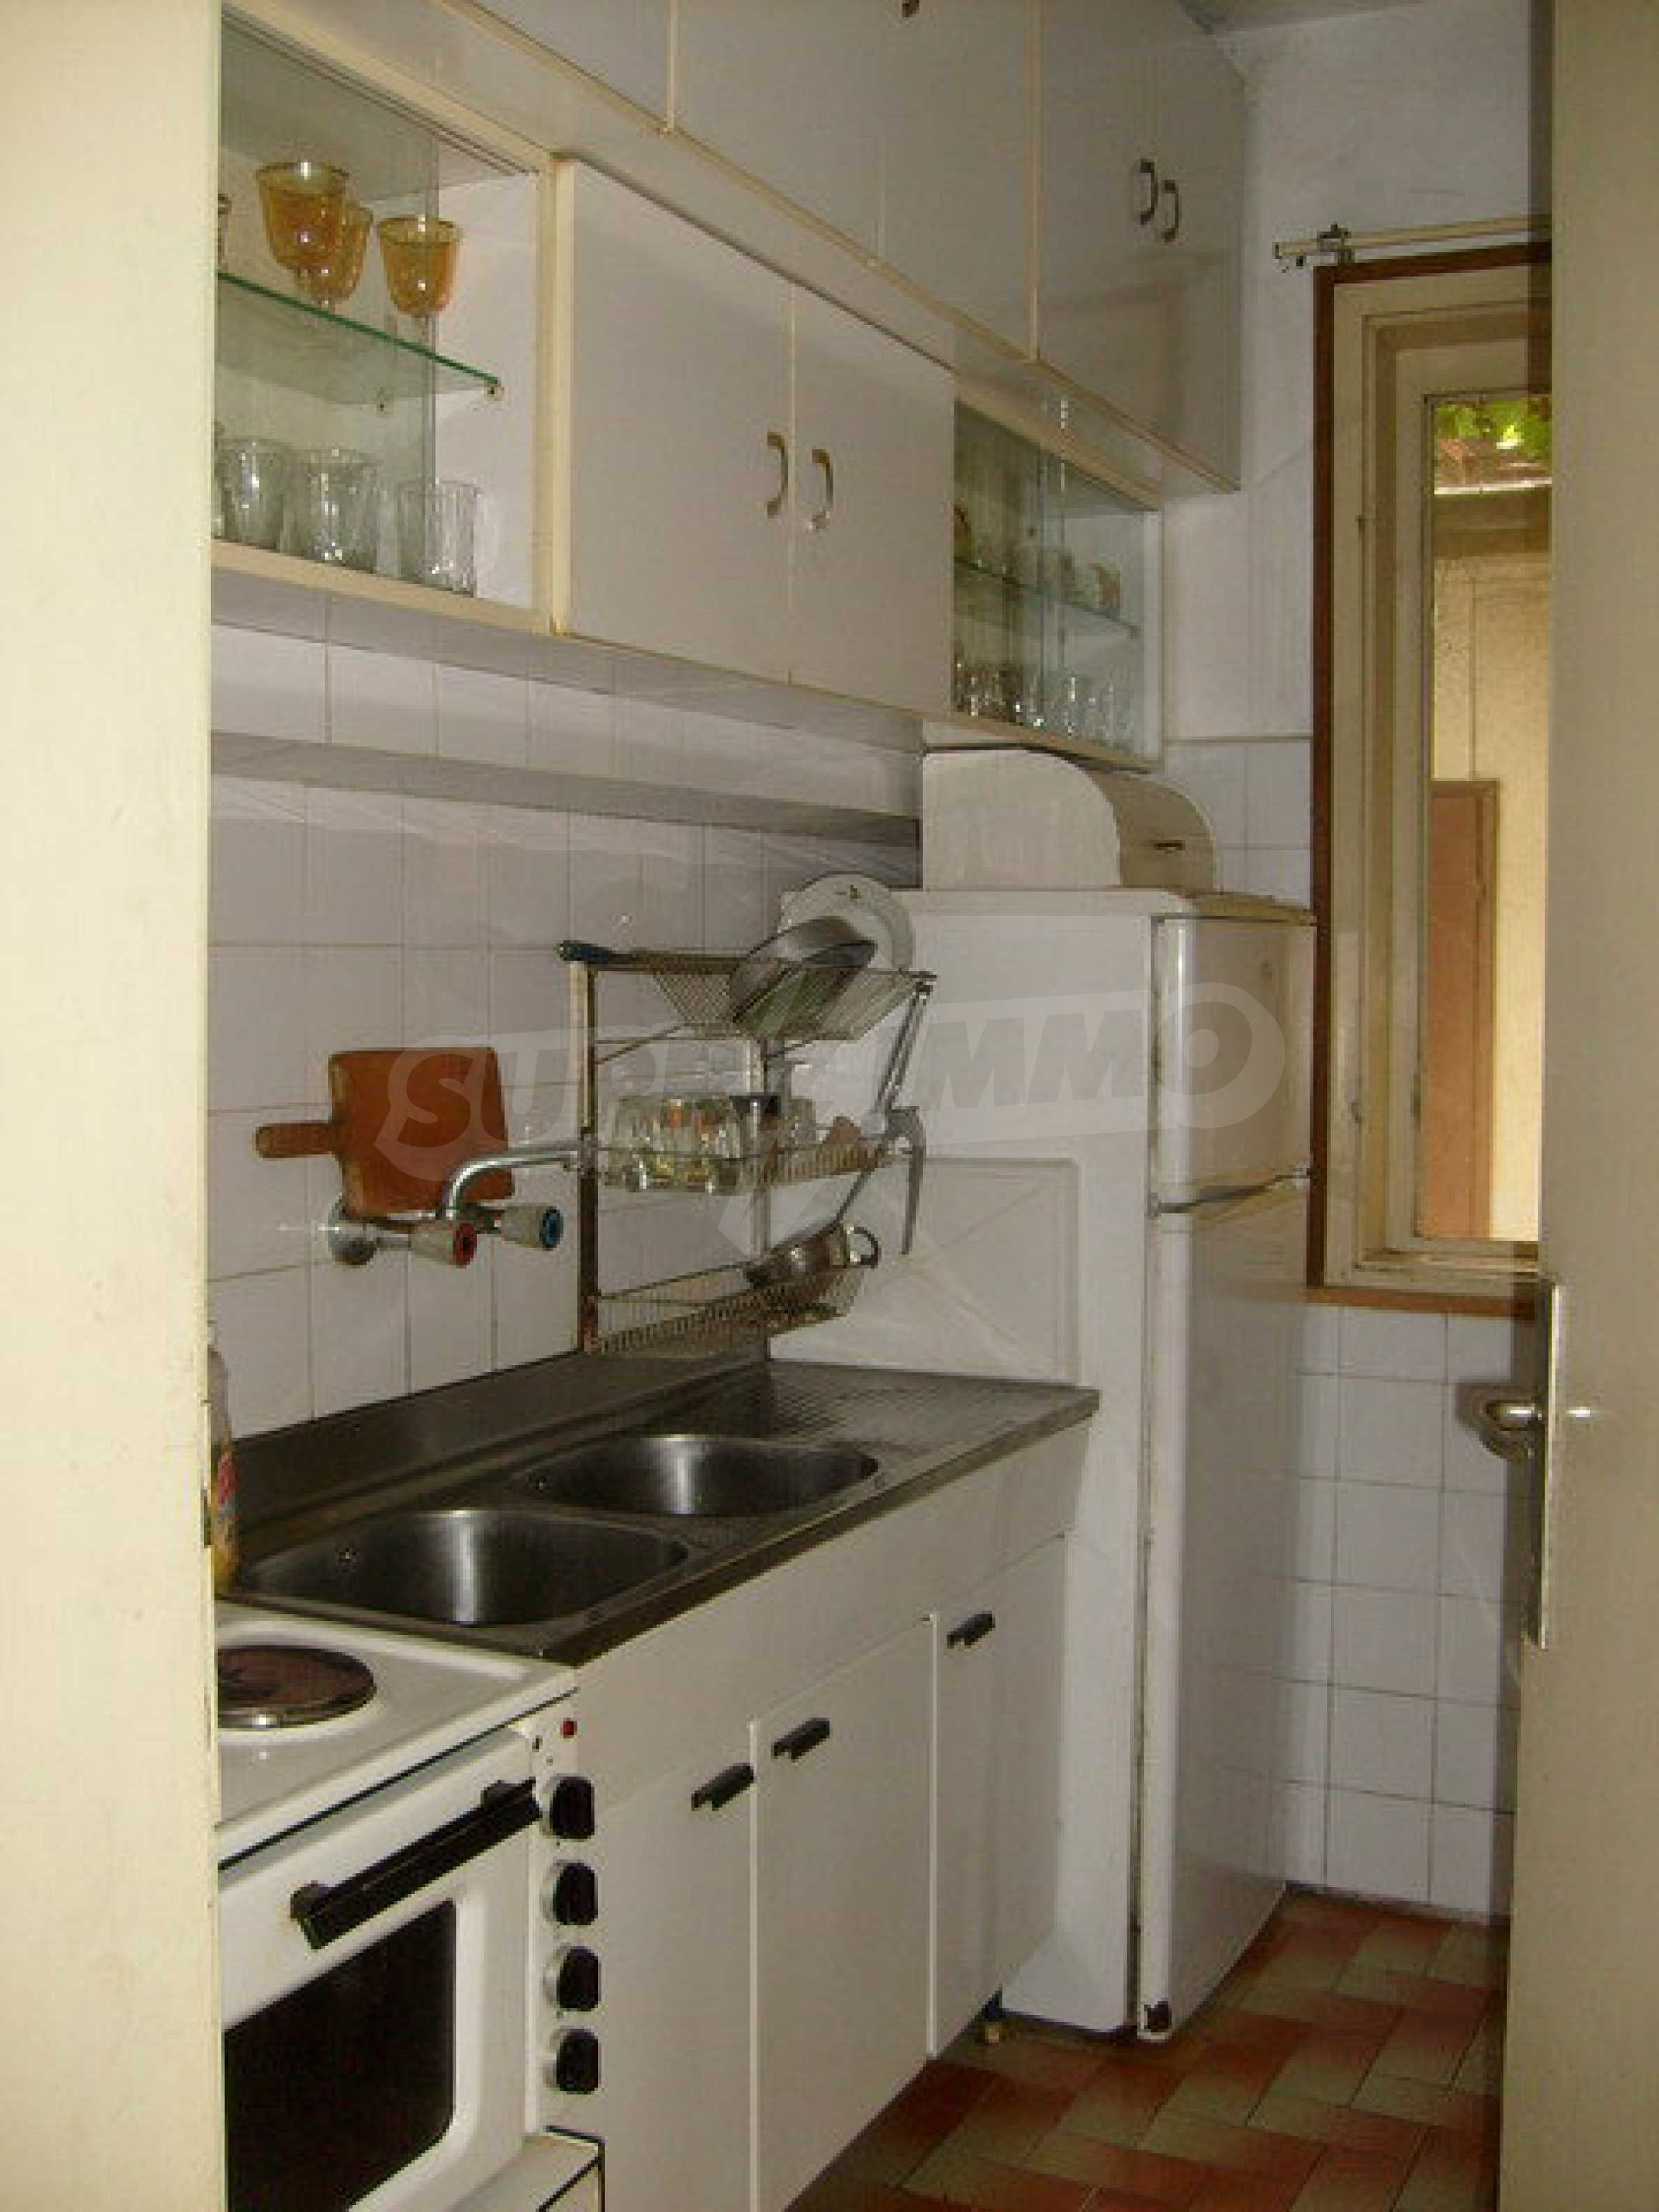 Two storey town house suitable for two families in Gabrovo 2